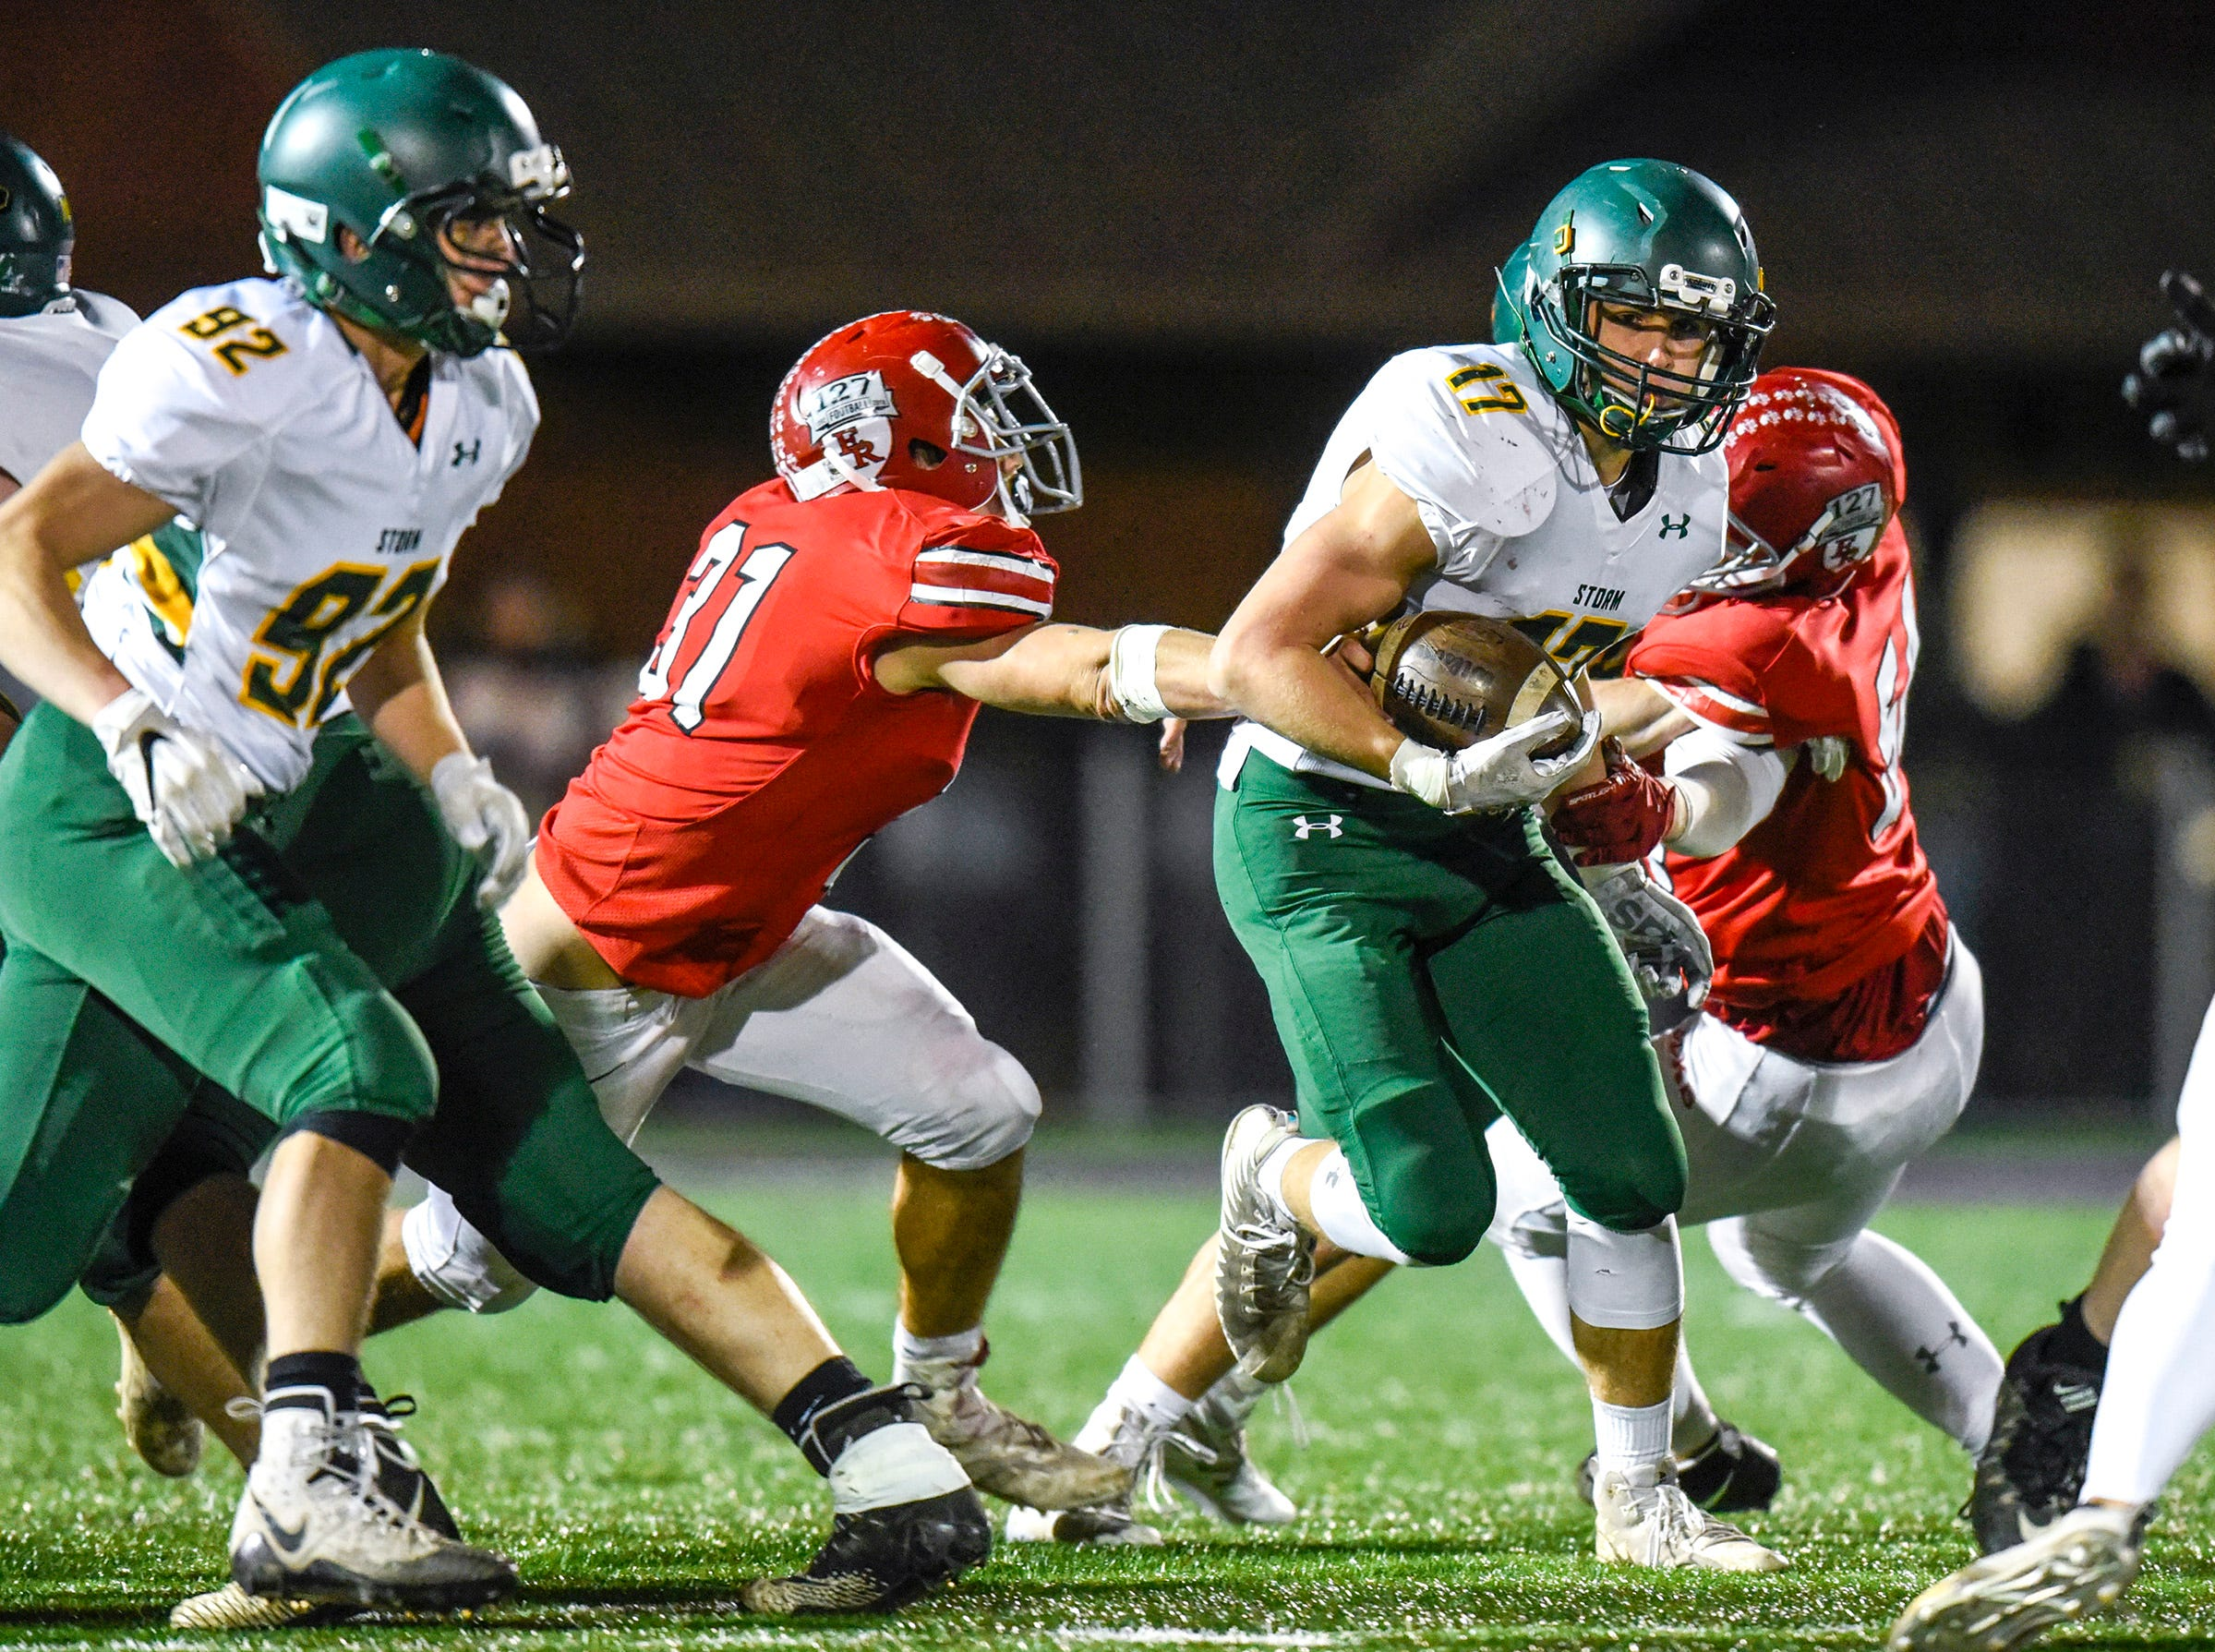 Sauk Rapids running back Jake Ackerman carries the ball against Elk River during the first half Friday, Nov. 2, in the Section 6-5A championship at Buffalo High School.